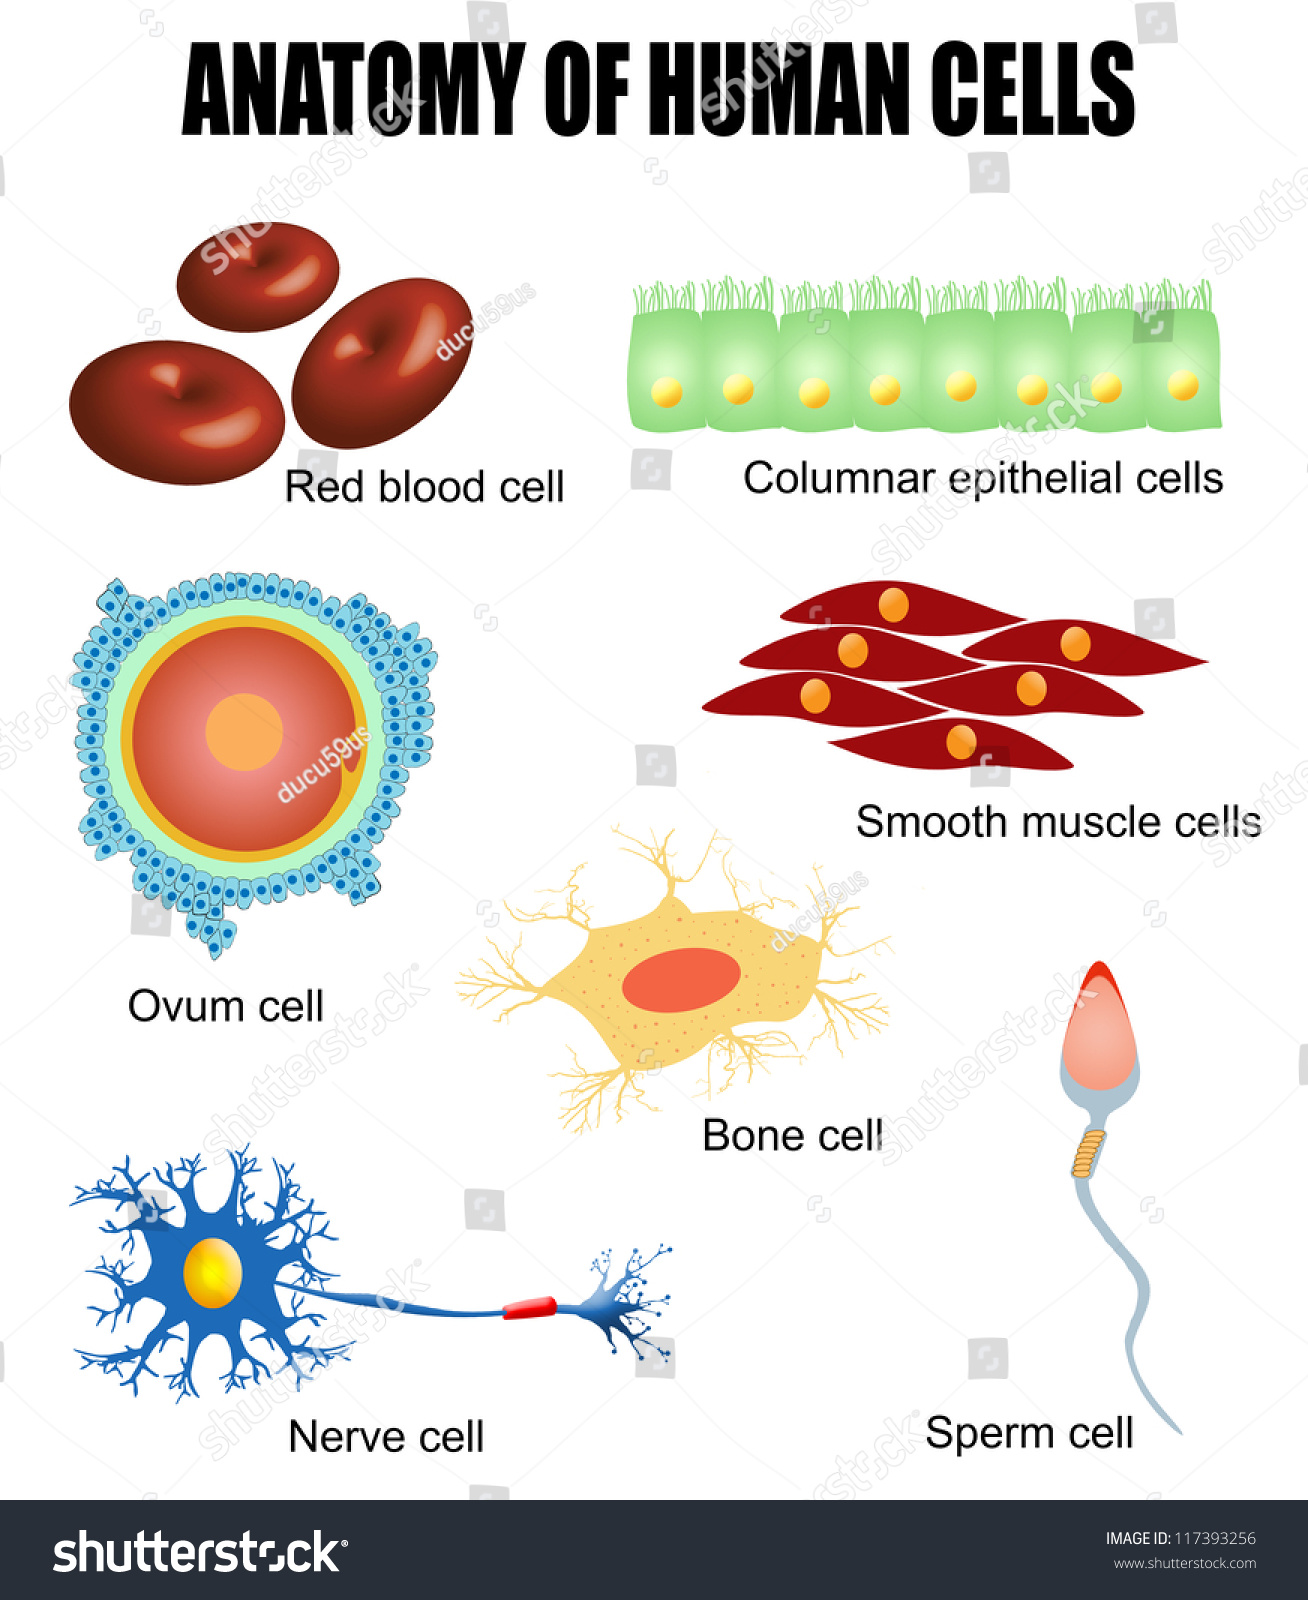 Anatomy Of Human Cells Useful For Education In Schools